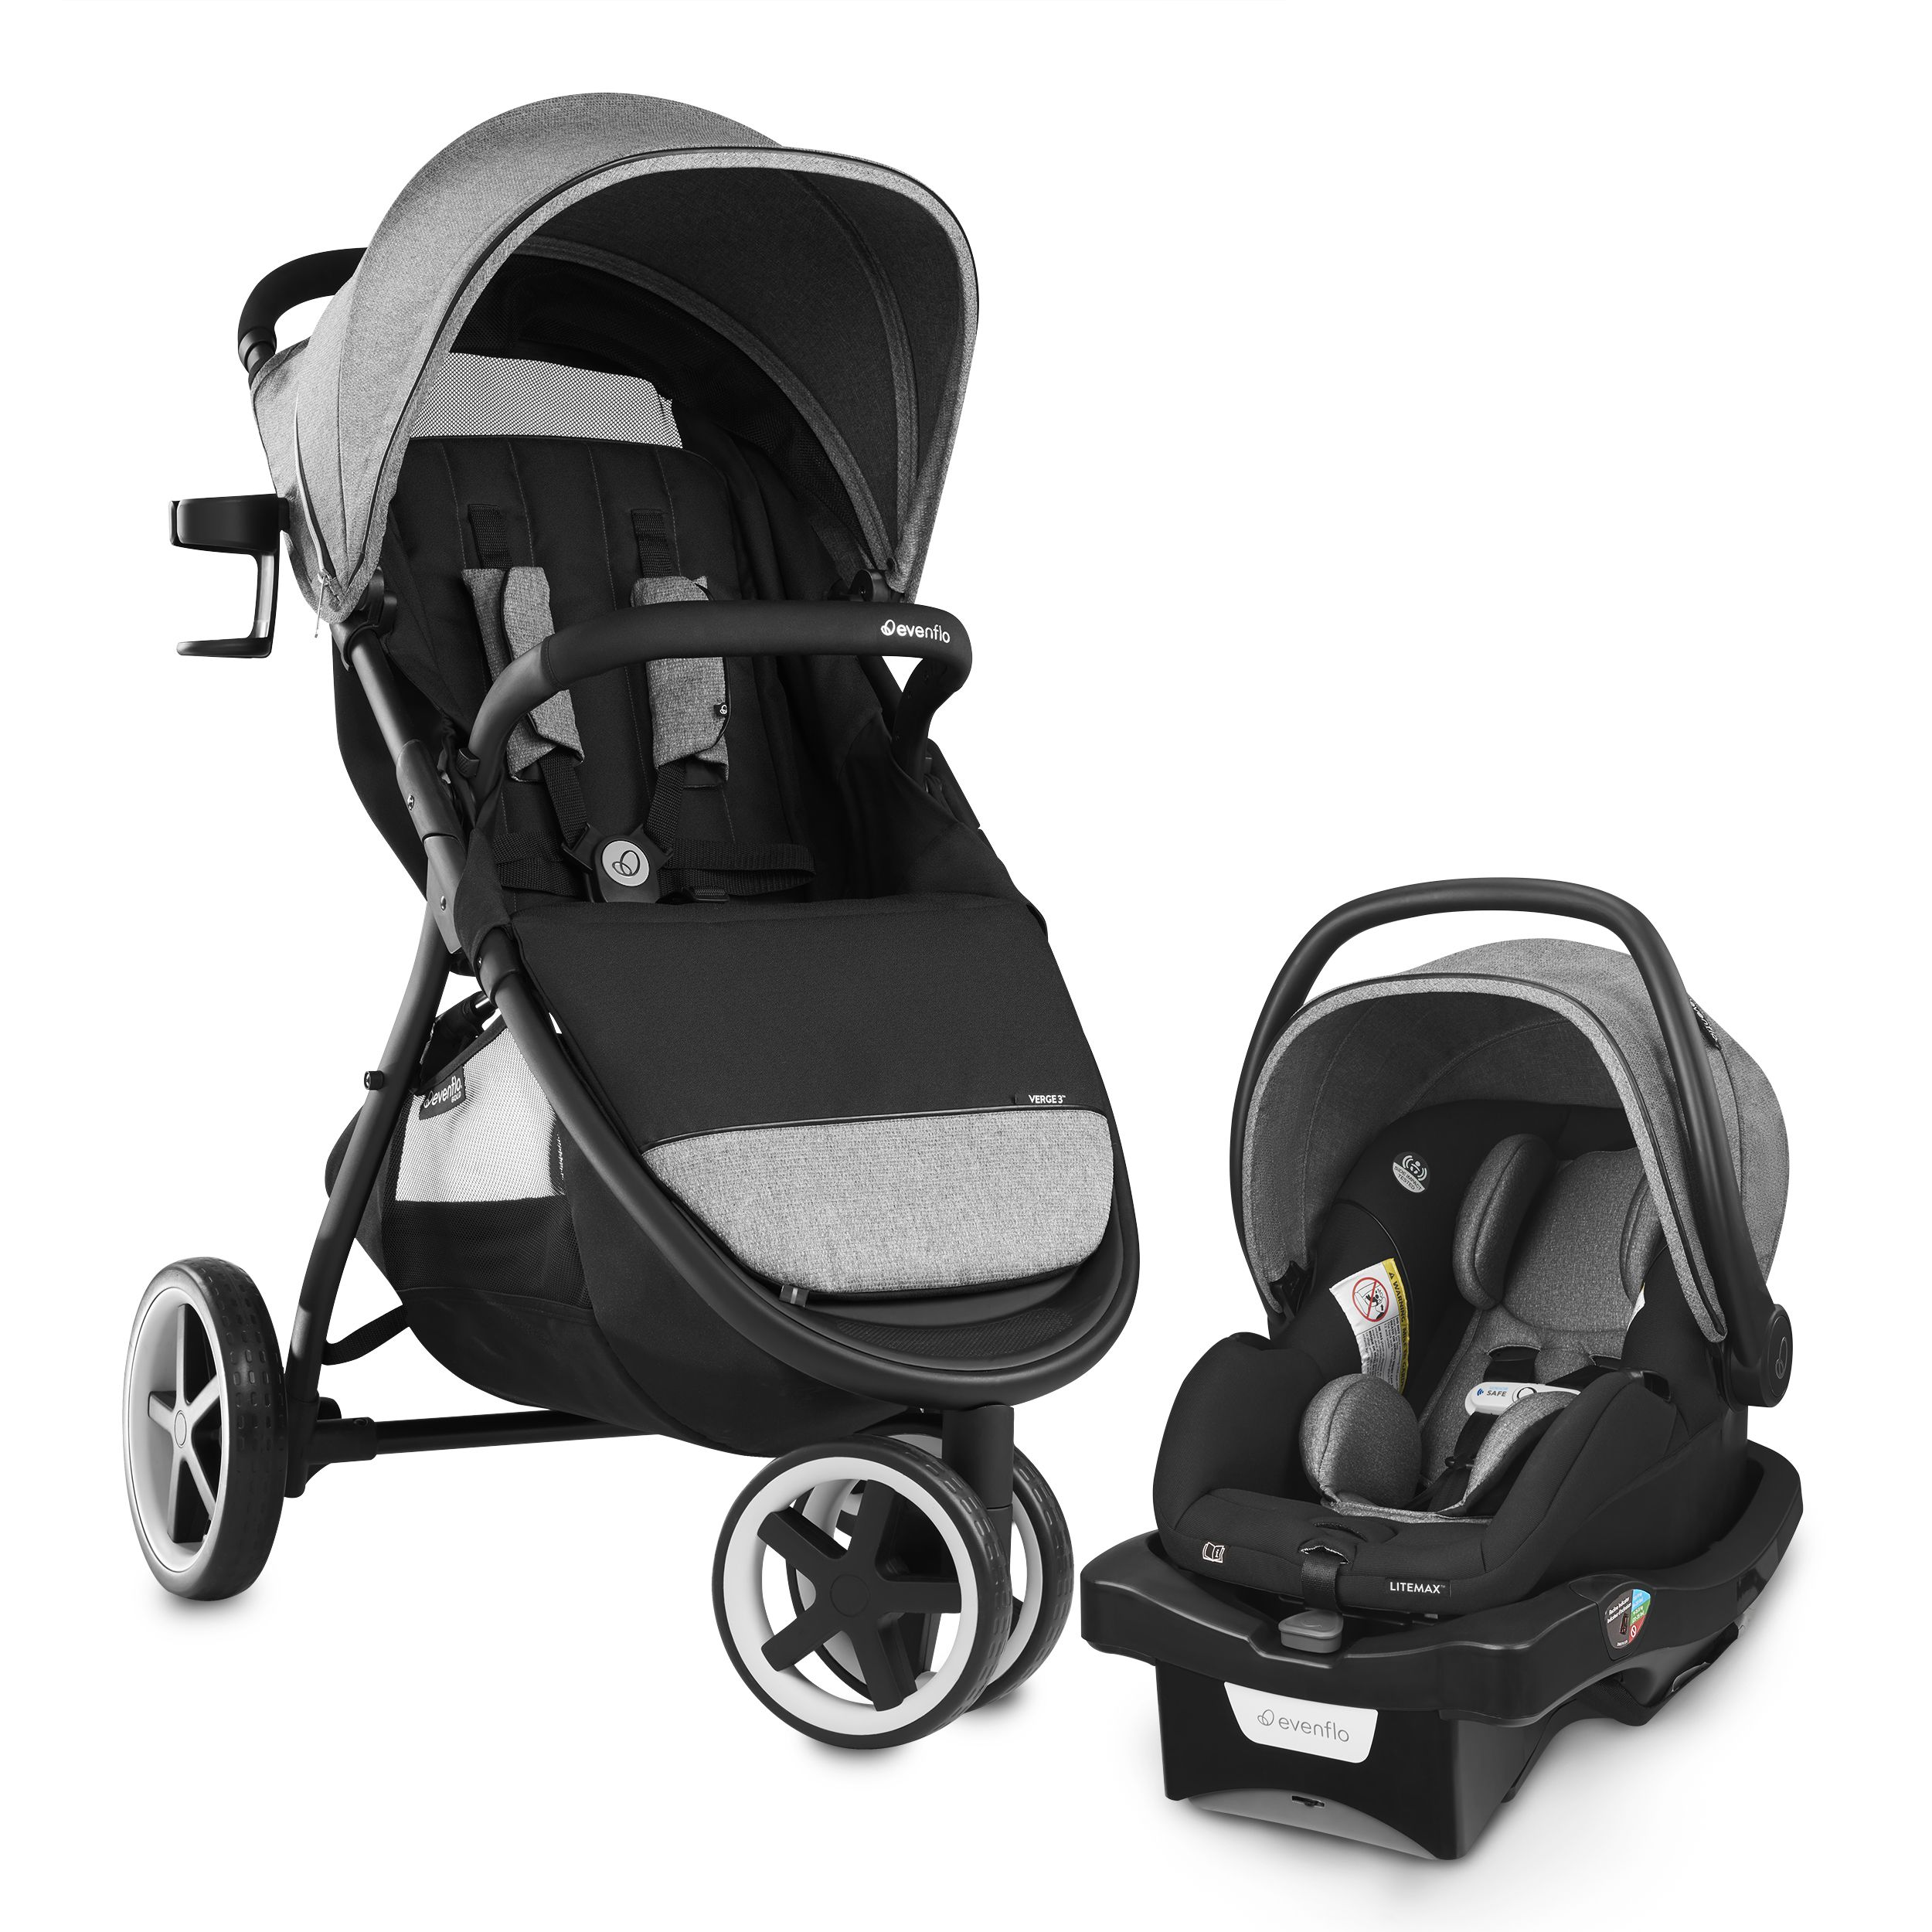 Busy days with kids demand a stroller that's easy to